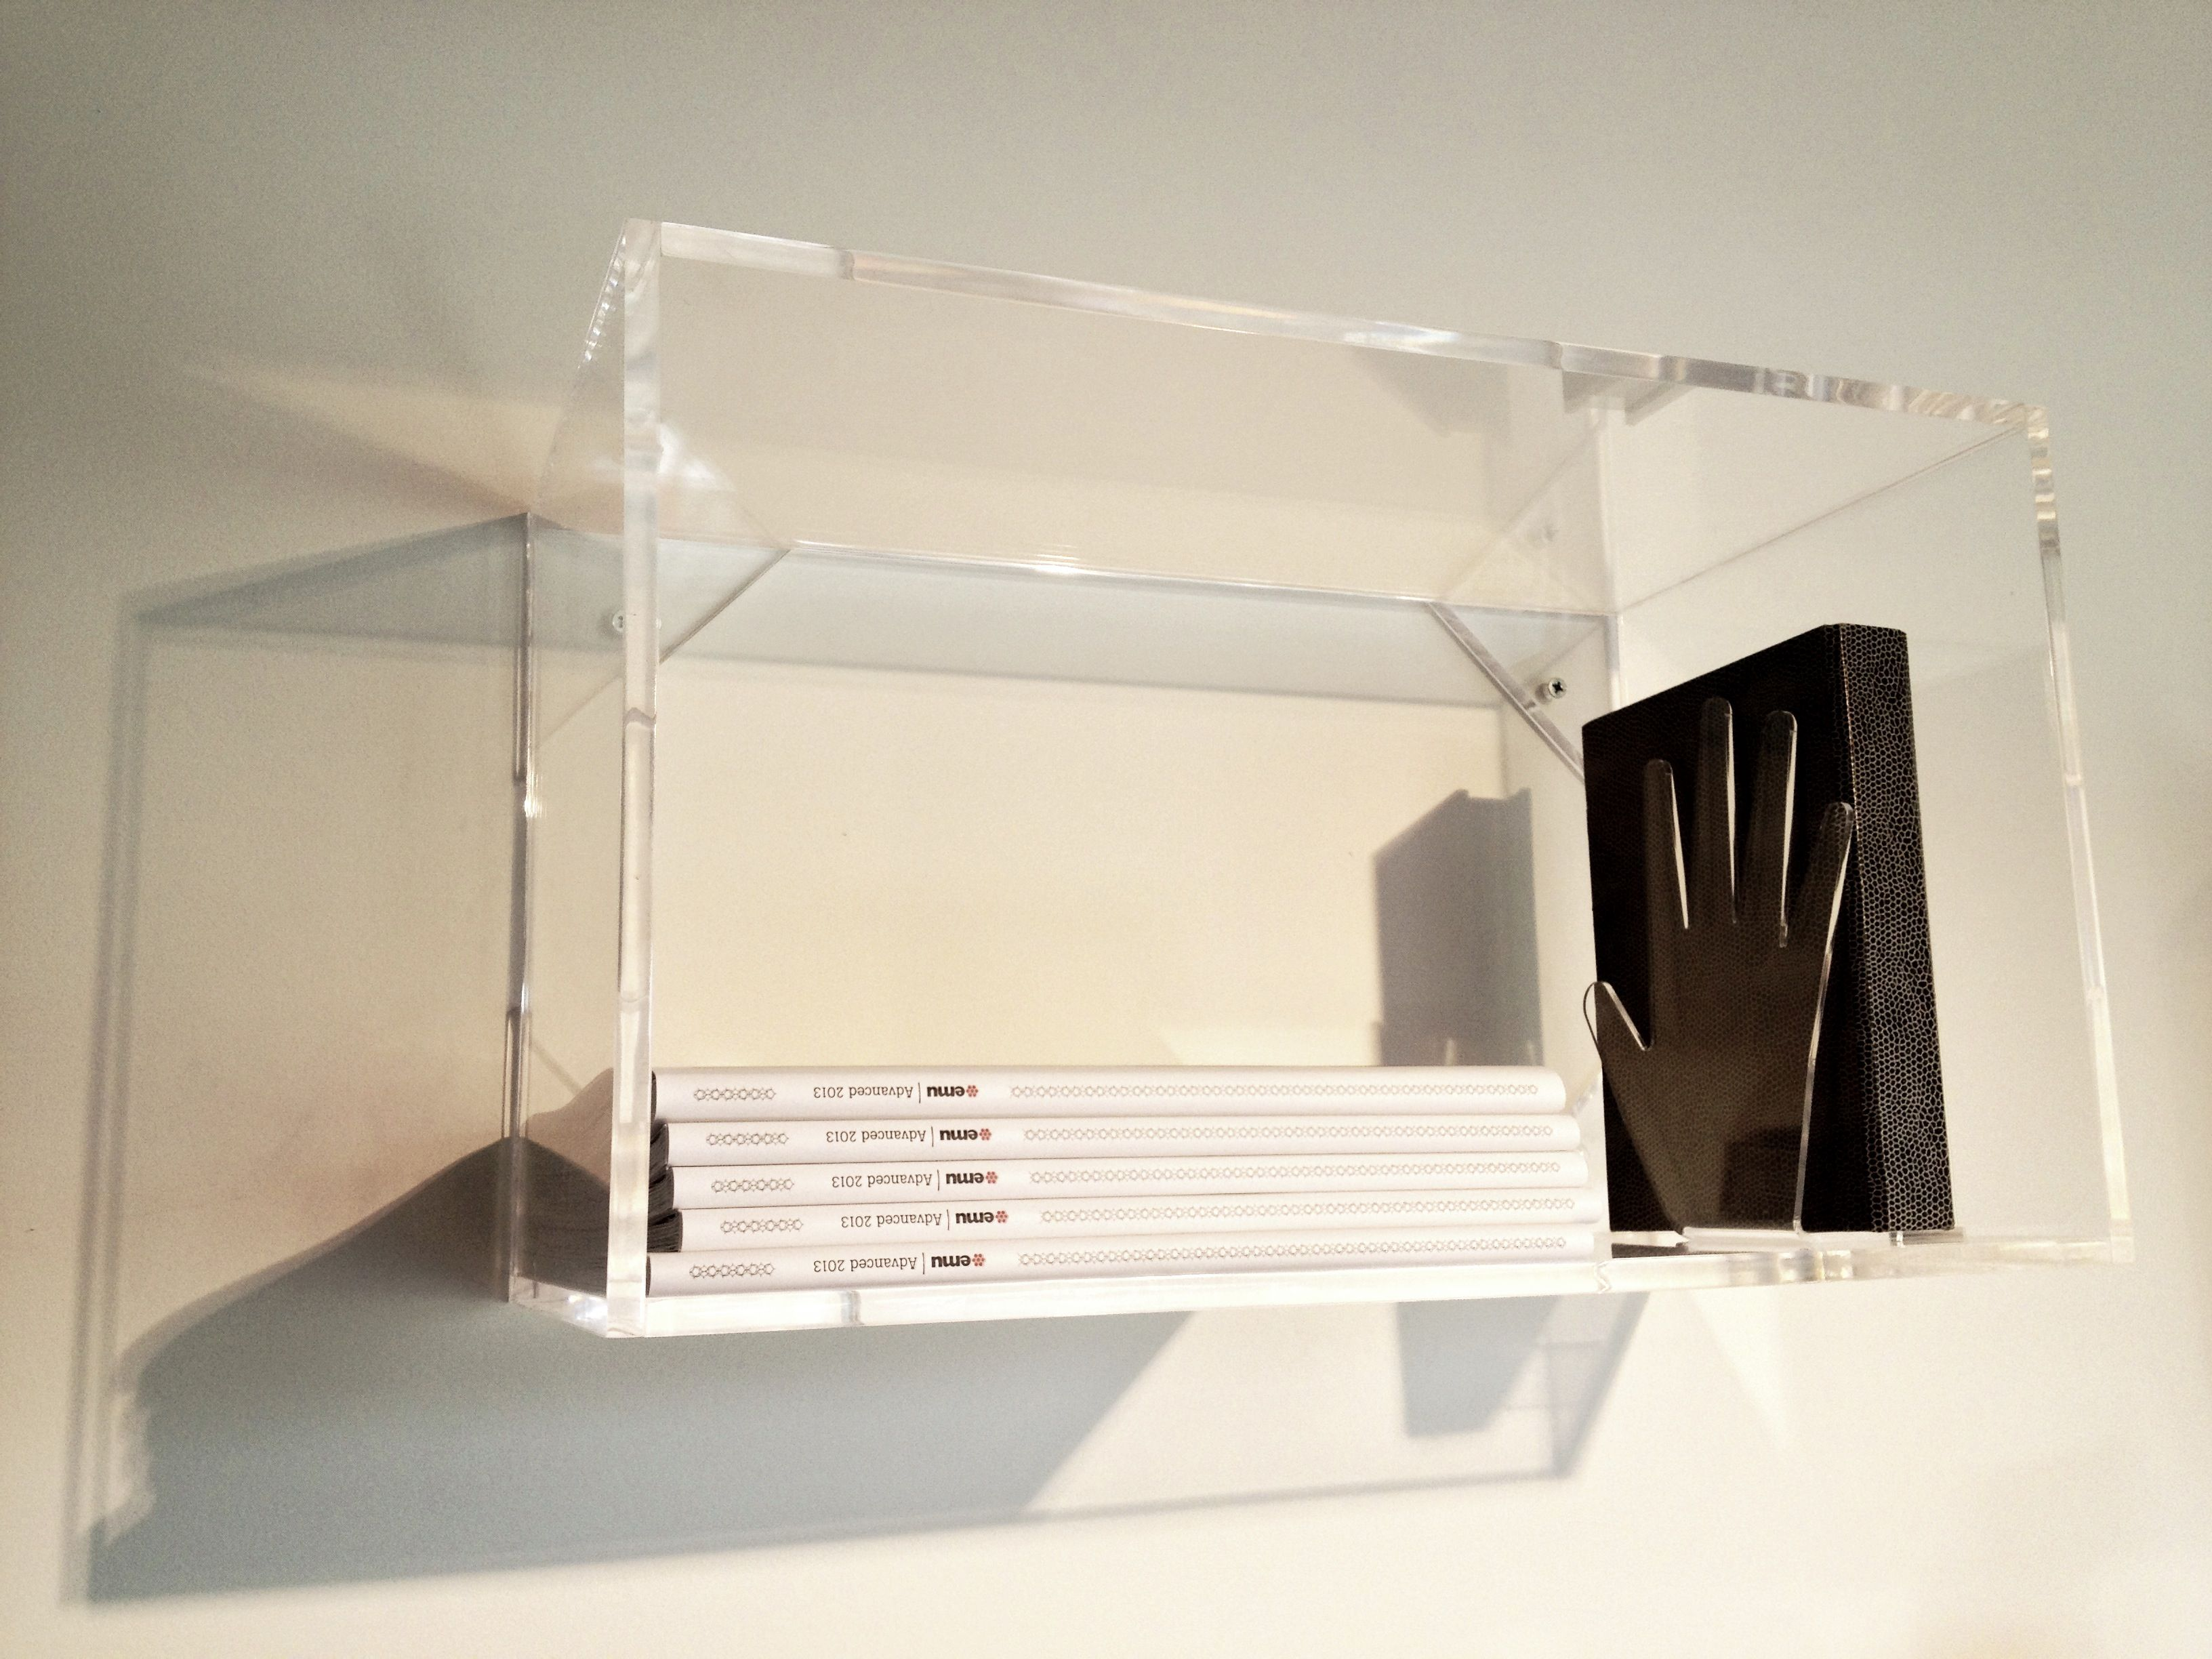 stunning size clear frightening and entertain stylish uncategorized lucit plastic shelf wall inspirational plexiglass beguiling bookcases charismatic x billy amazing bookcase shelves acrylic ladder full book mounted of everly lucite